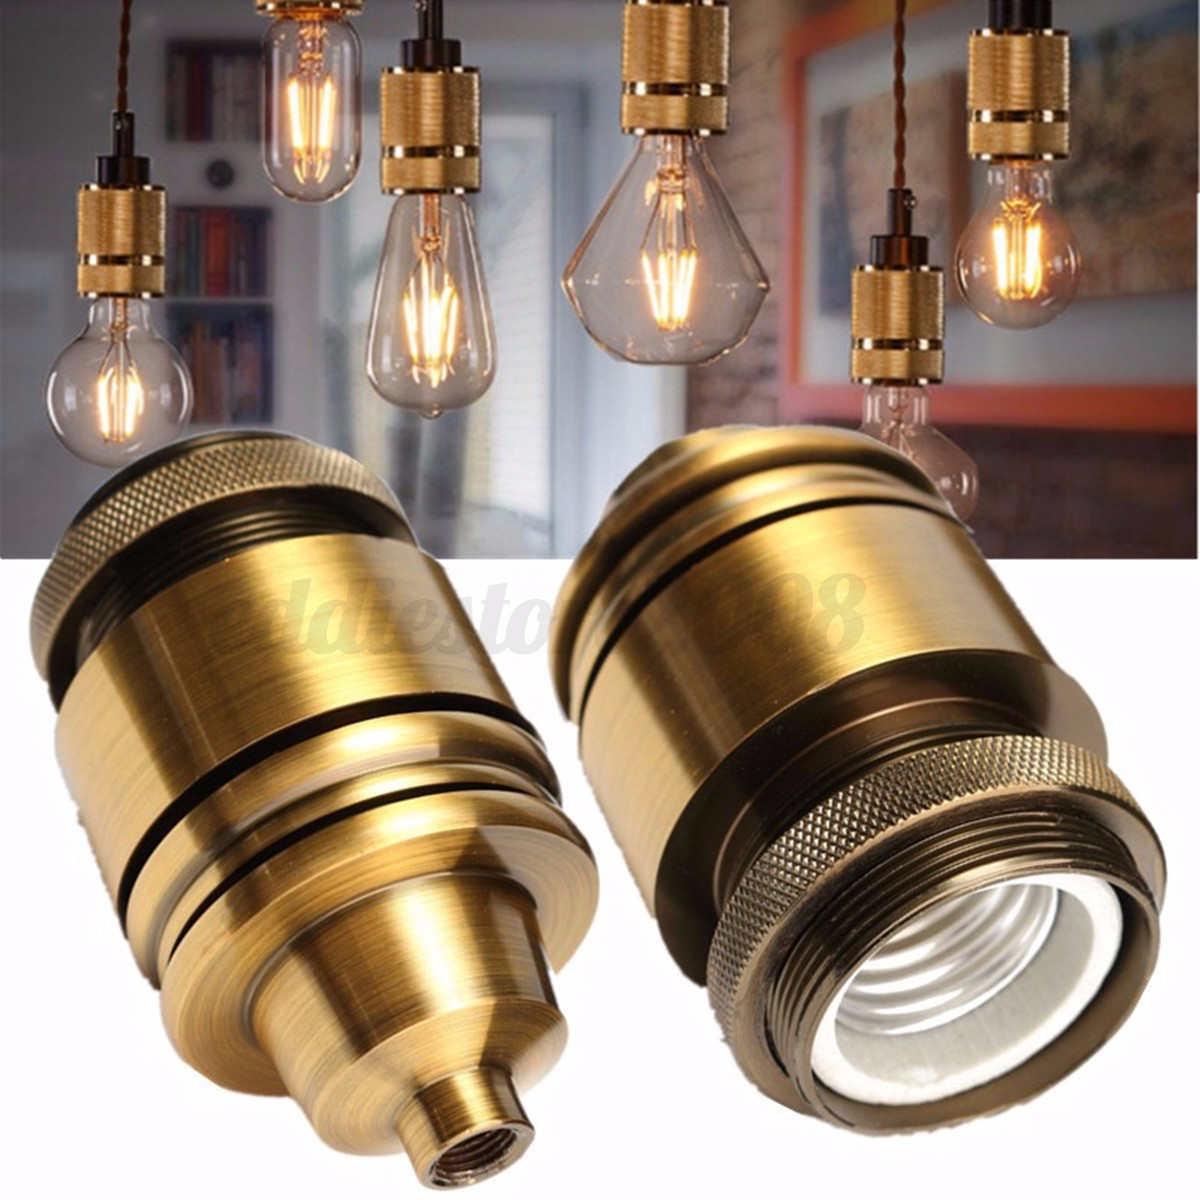 e27 e26 industrial vintage solid brass light socket. Black Bedroom Furniture Sets. Home Design Ideas